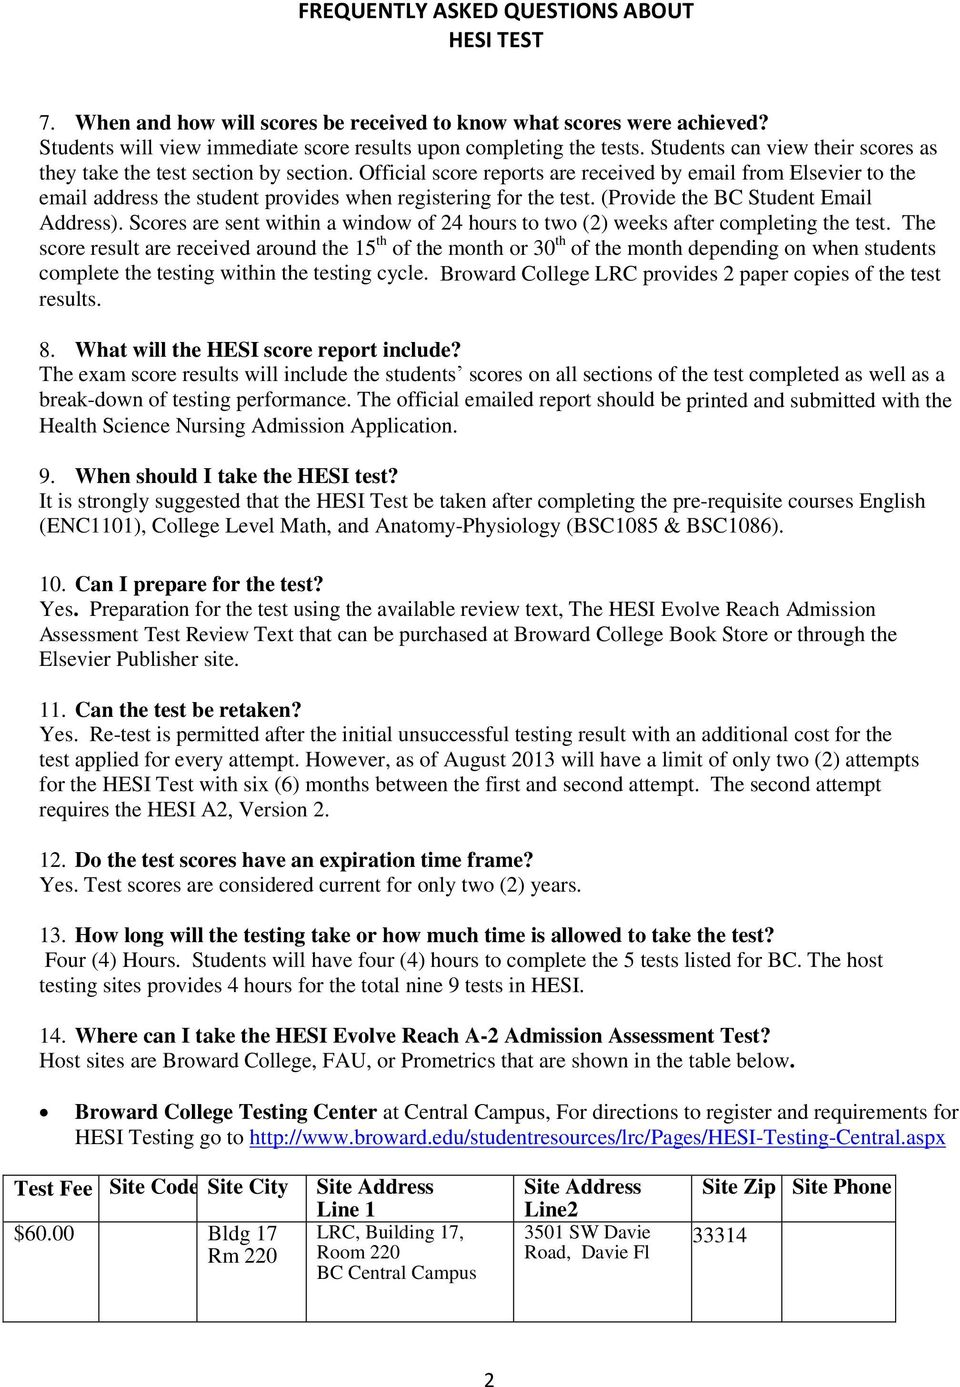 FREQUENTLY ASKED QUESTIONS ABOUT HESI TEST - PDF